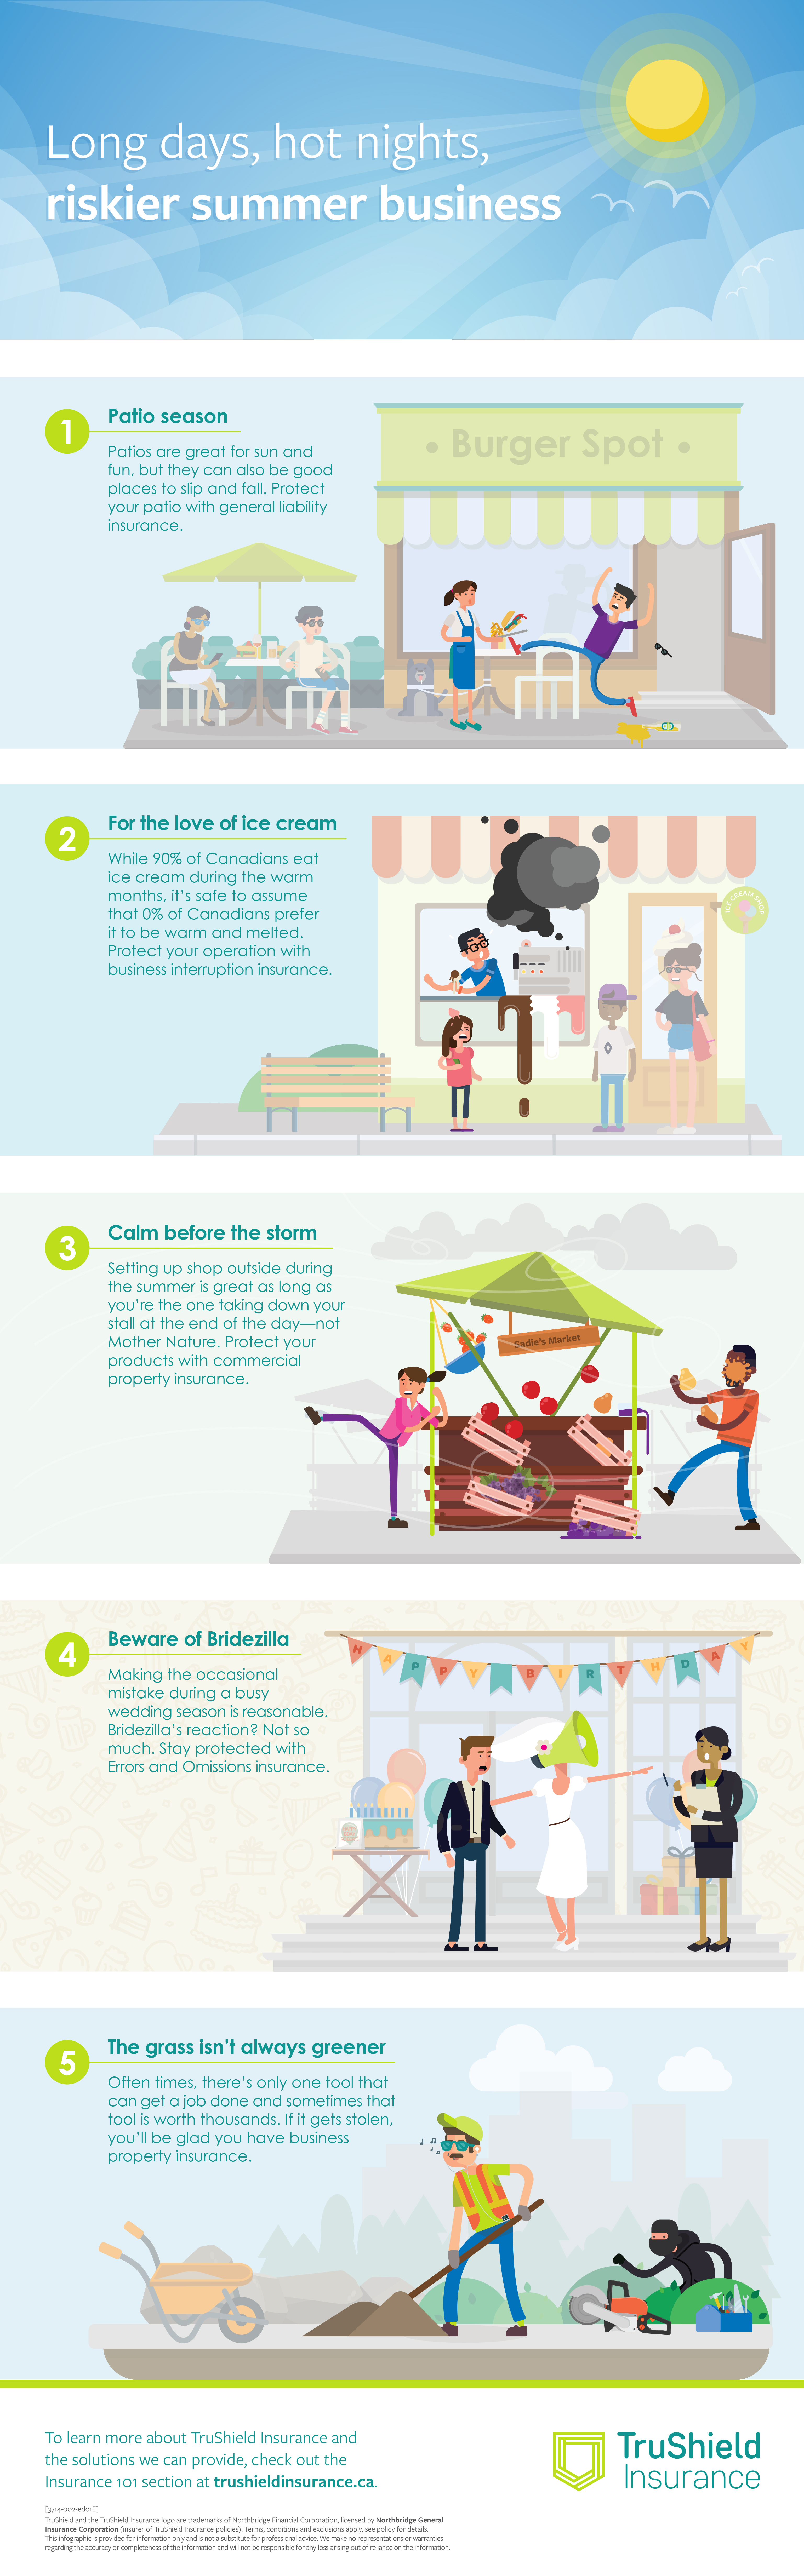 TruShield- Infographic on how to insure your seasonal or summer business operation